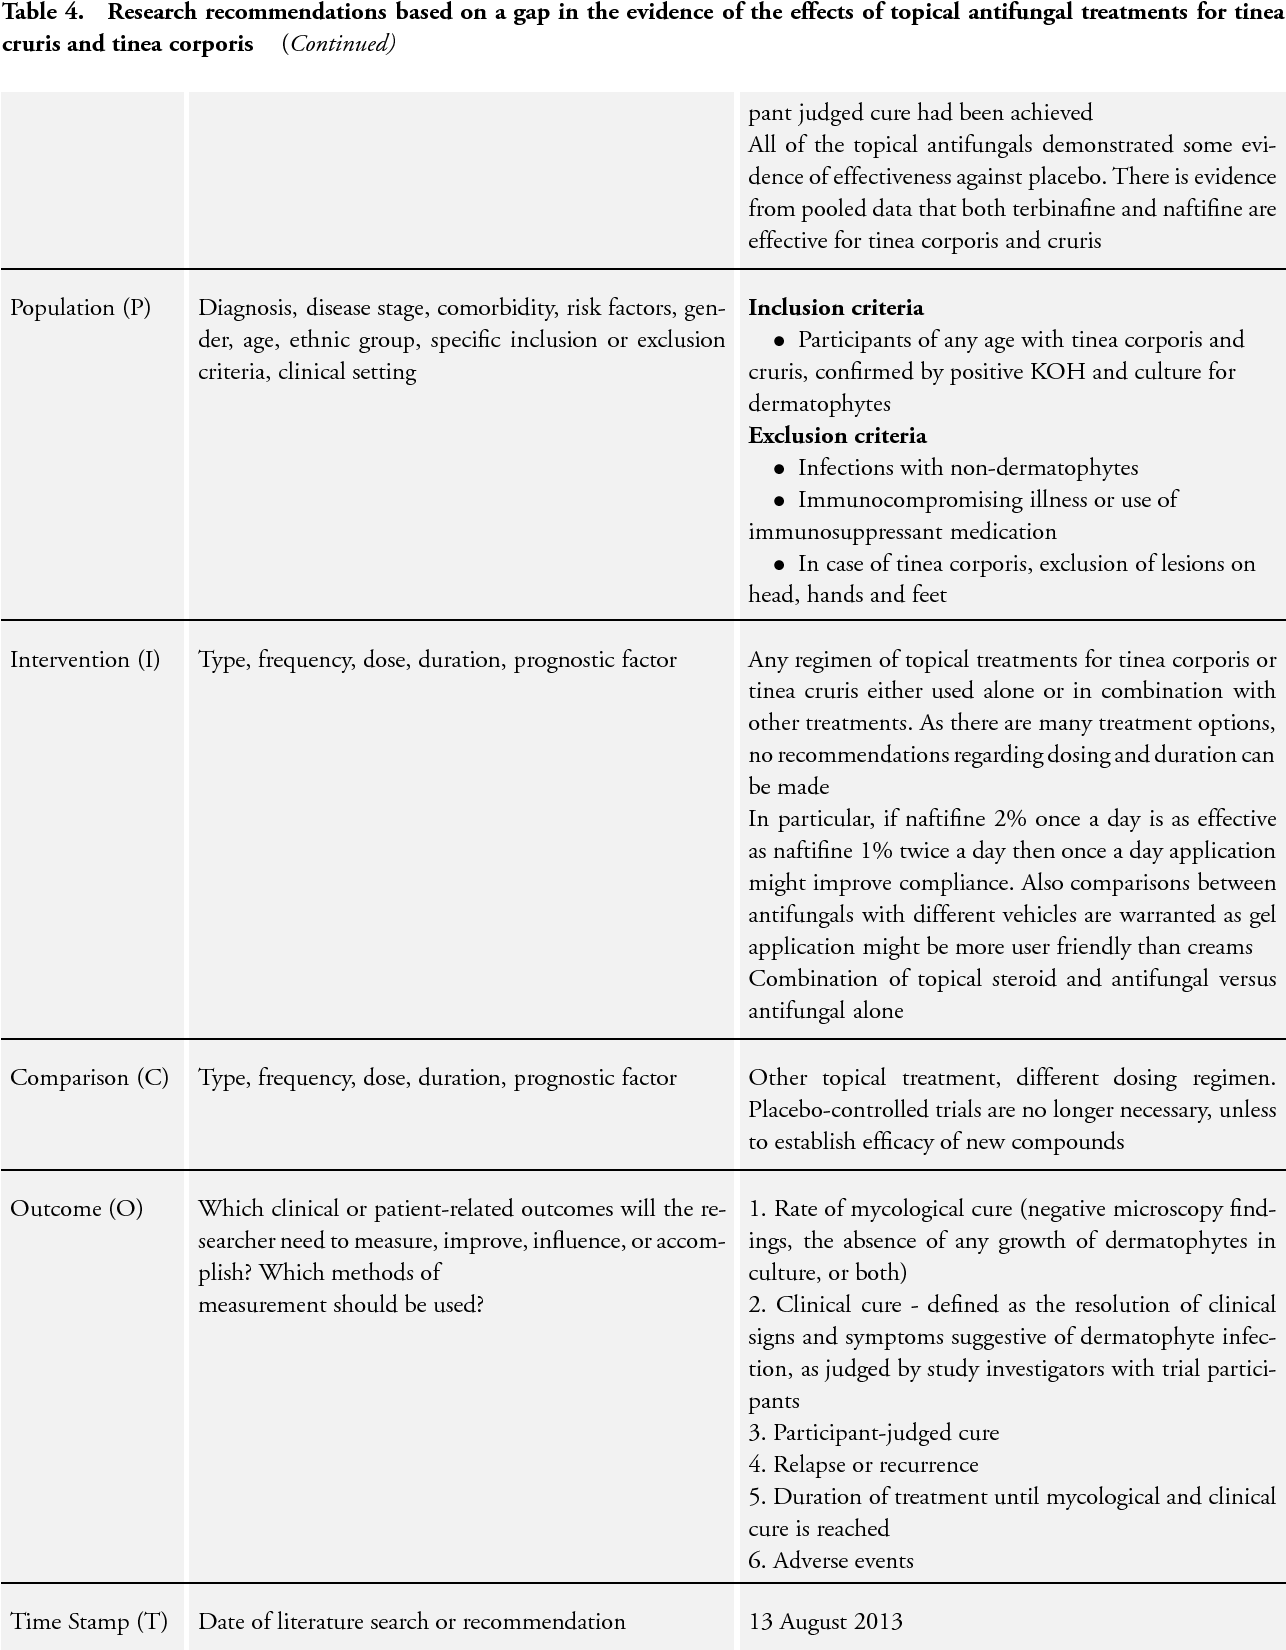 Table 4 from Topical antifungal treatments for tinea cruris